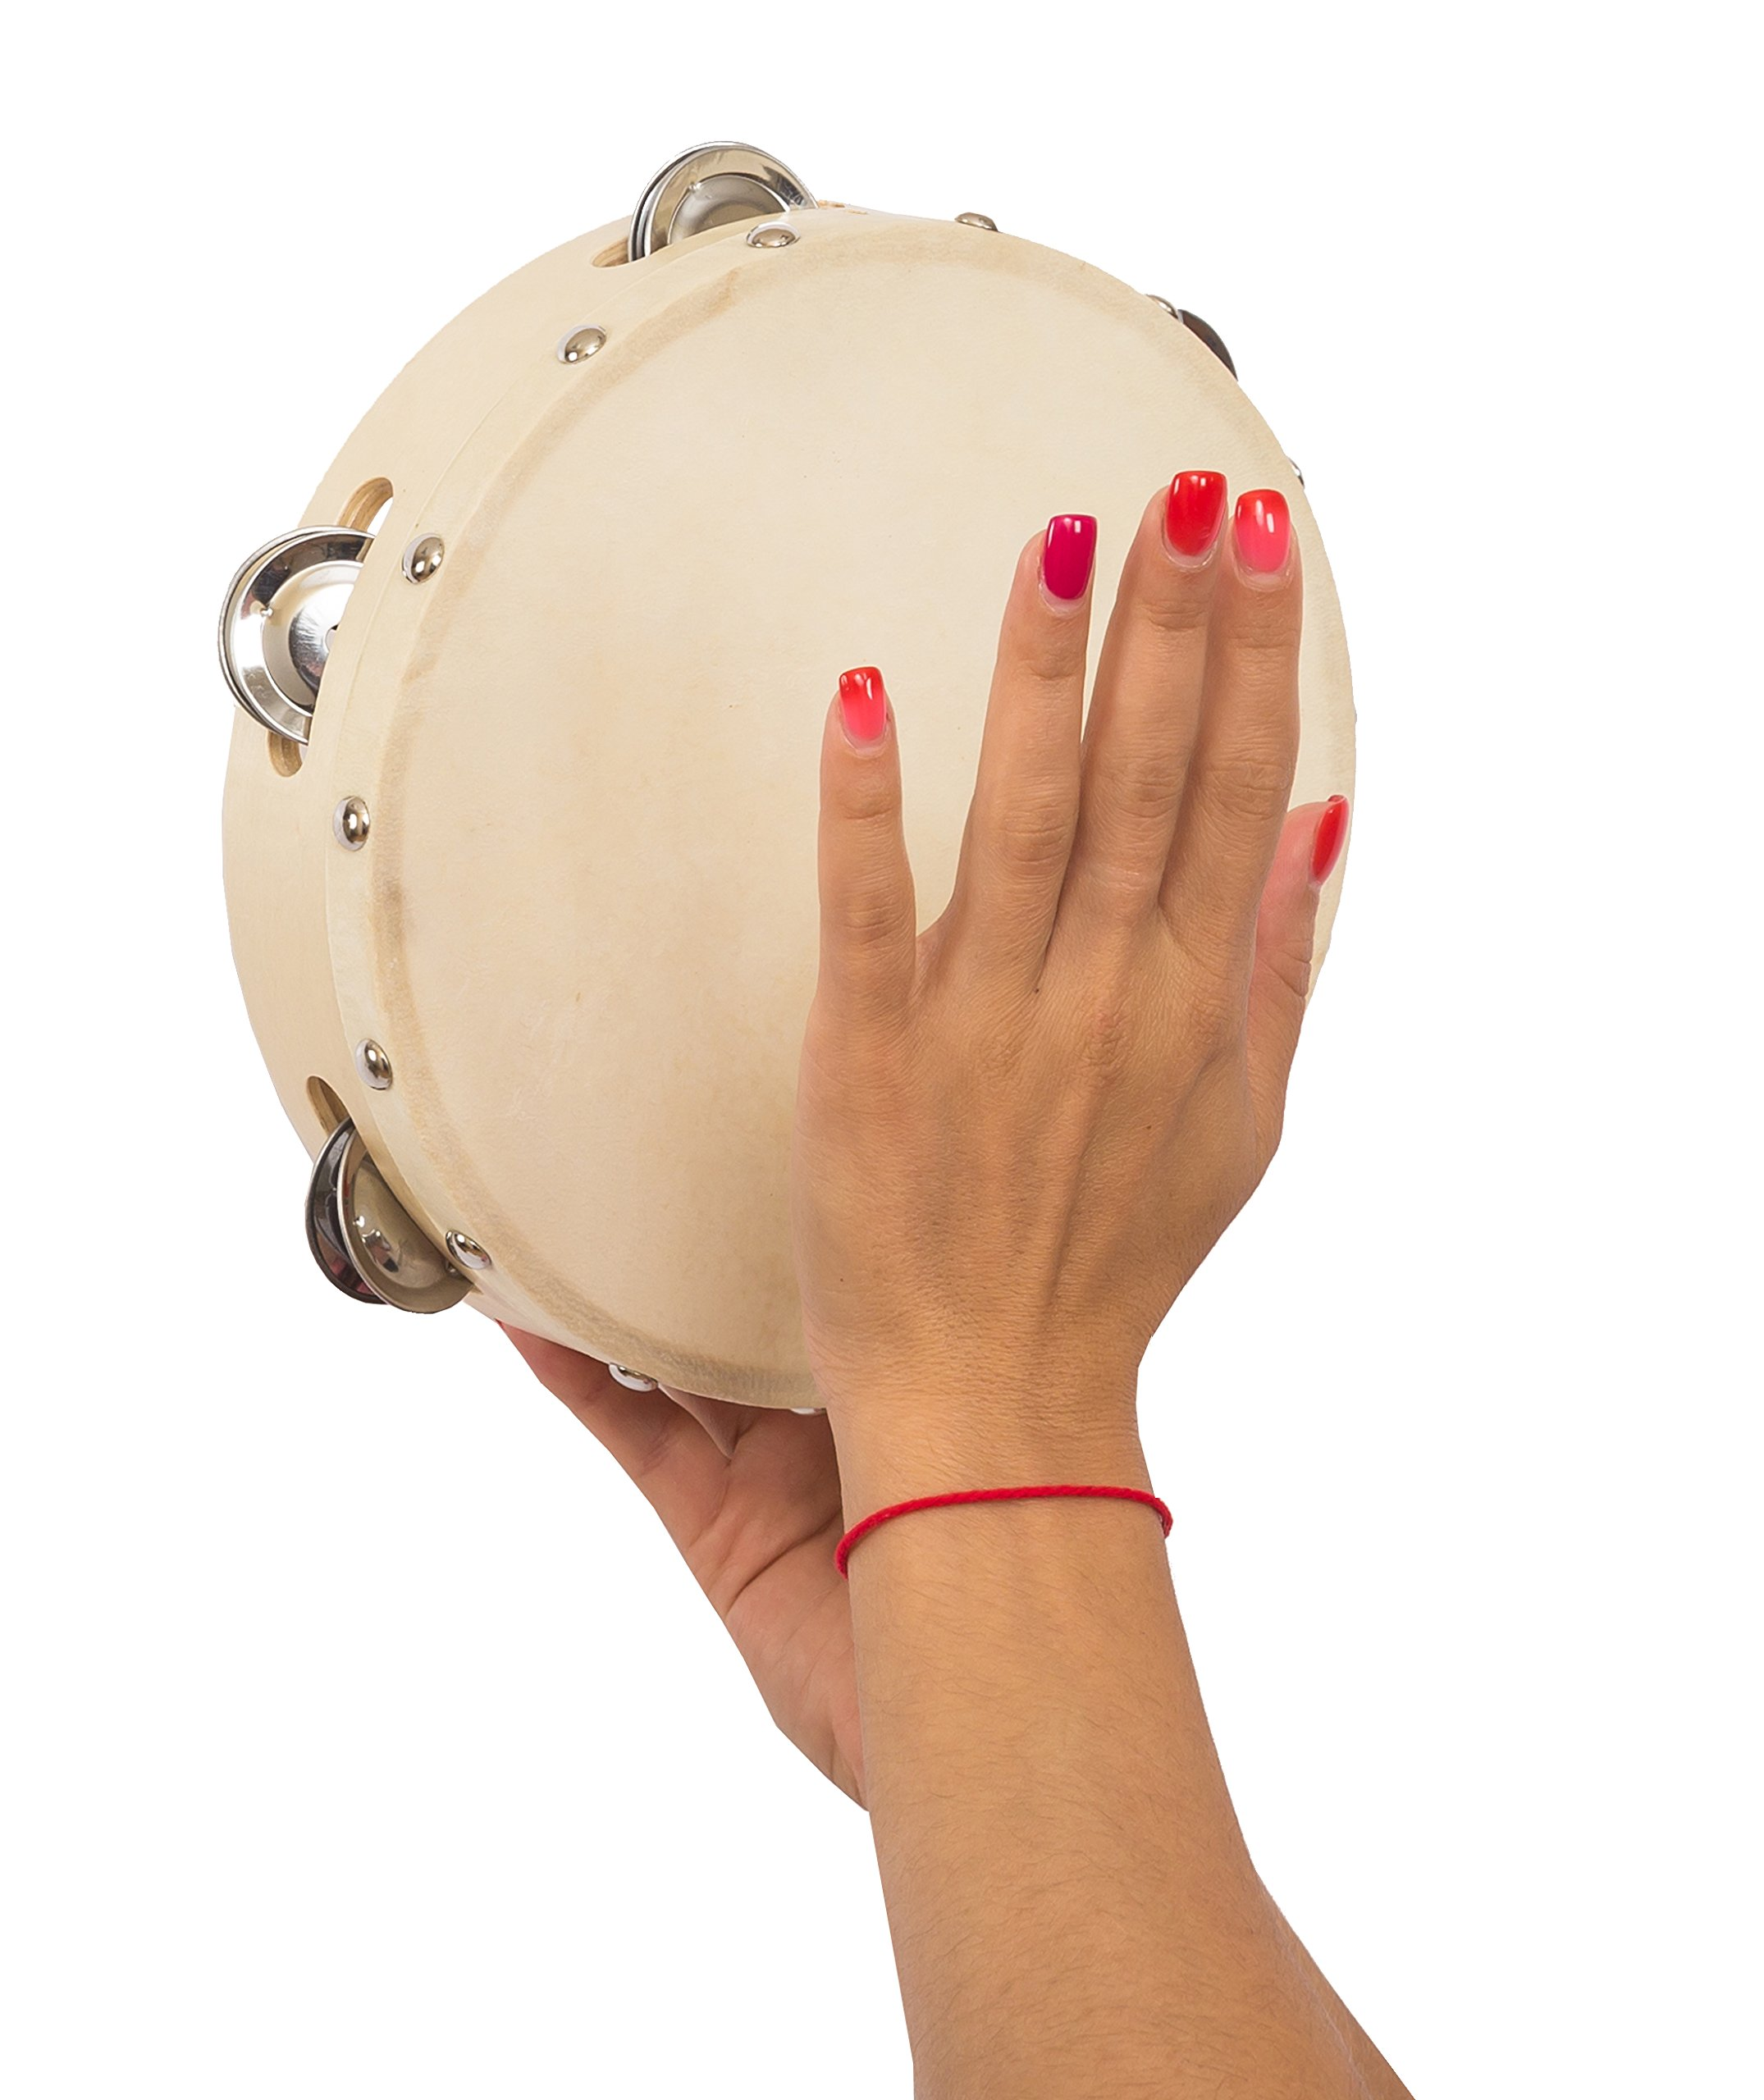 Hand Held Tambourine 8 inch - Tamburine Drum with Metal Jingles - Percussion for Church, Kids, Adults